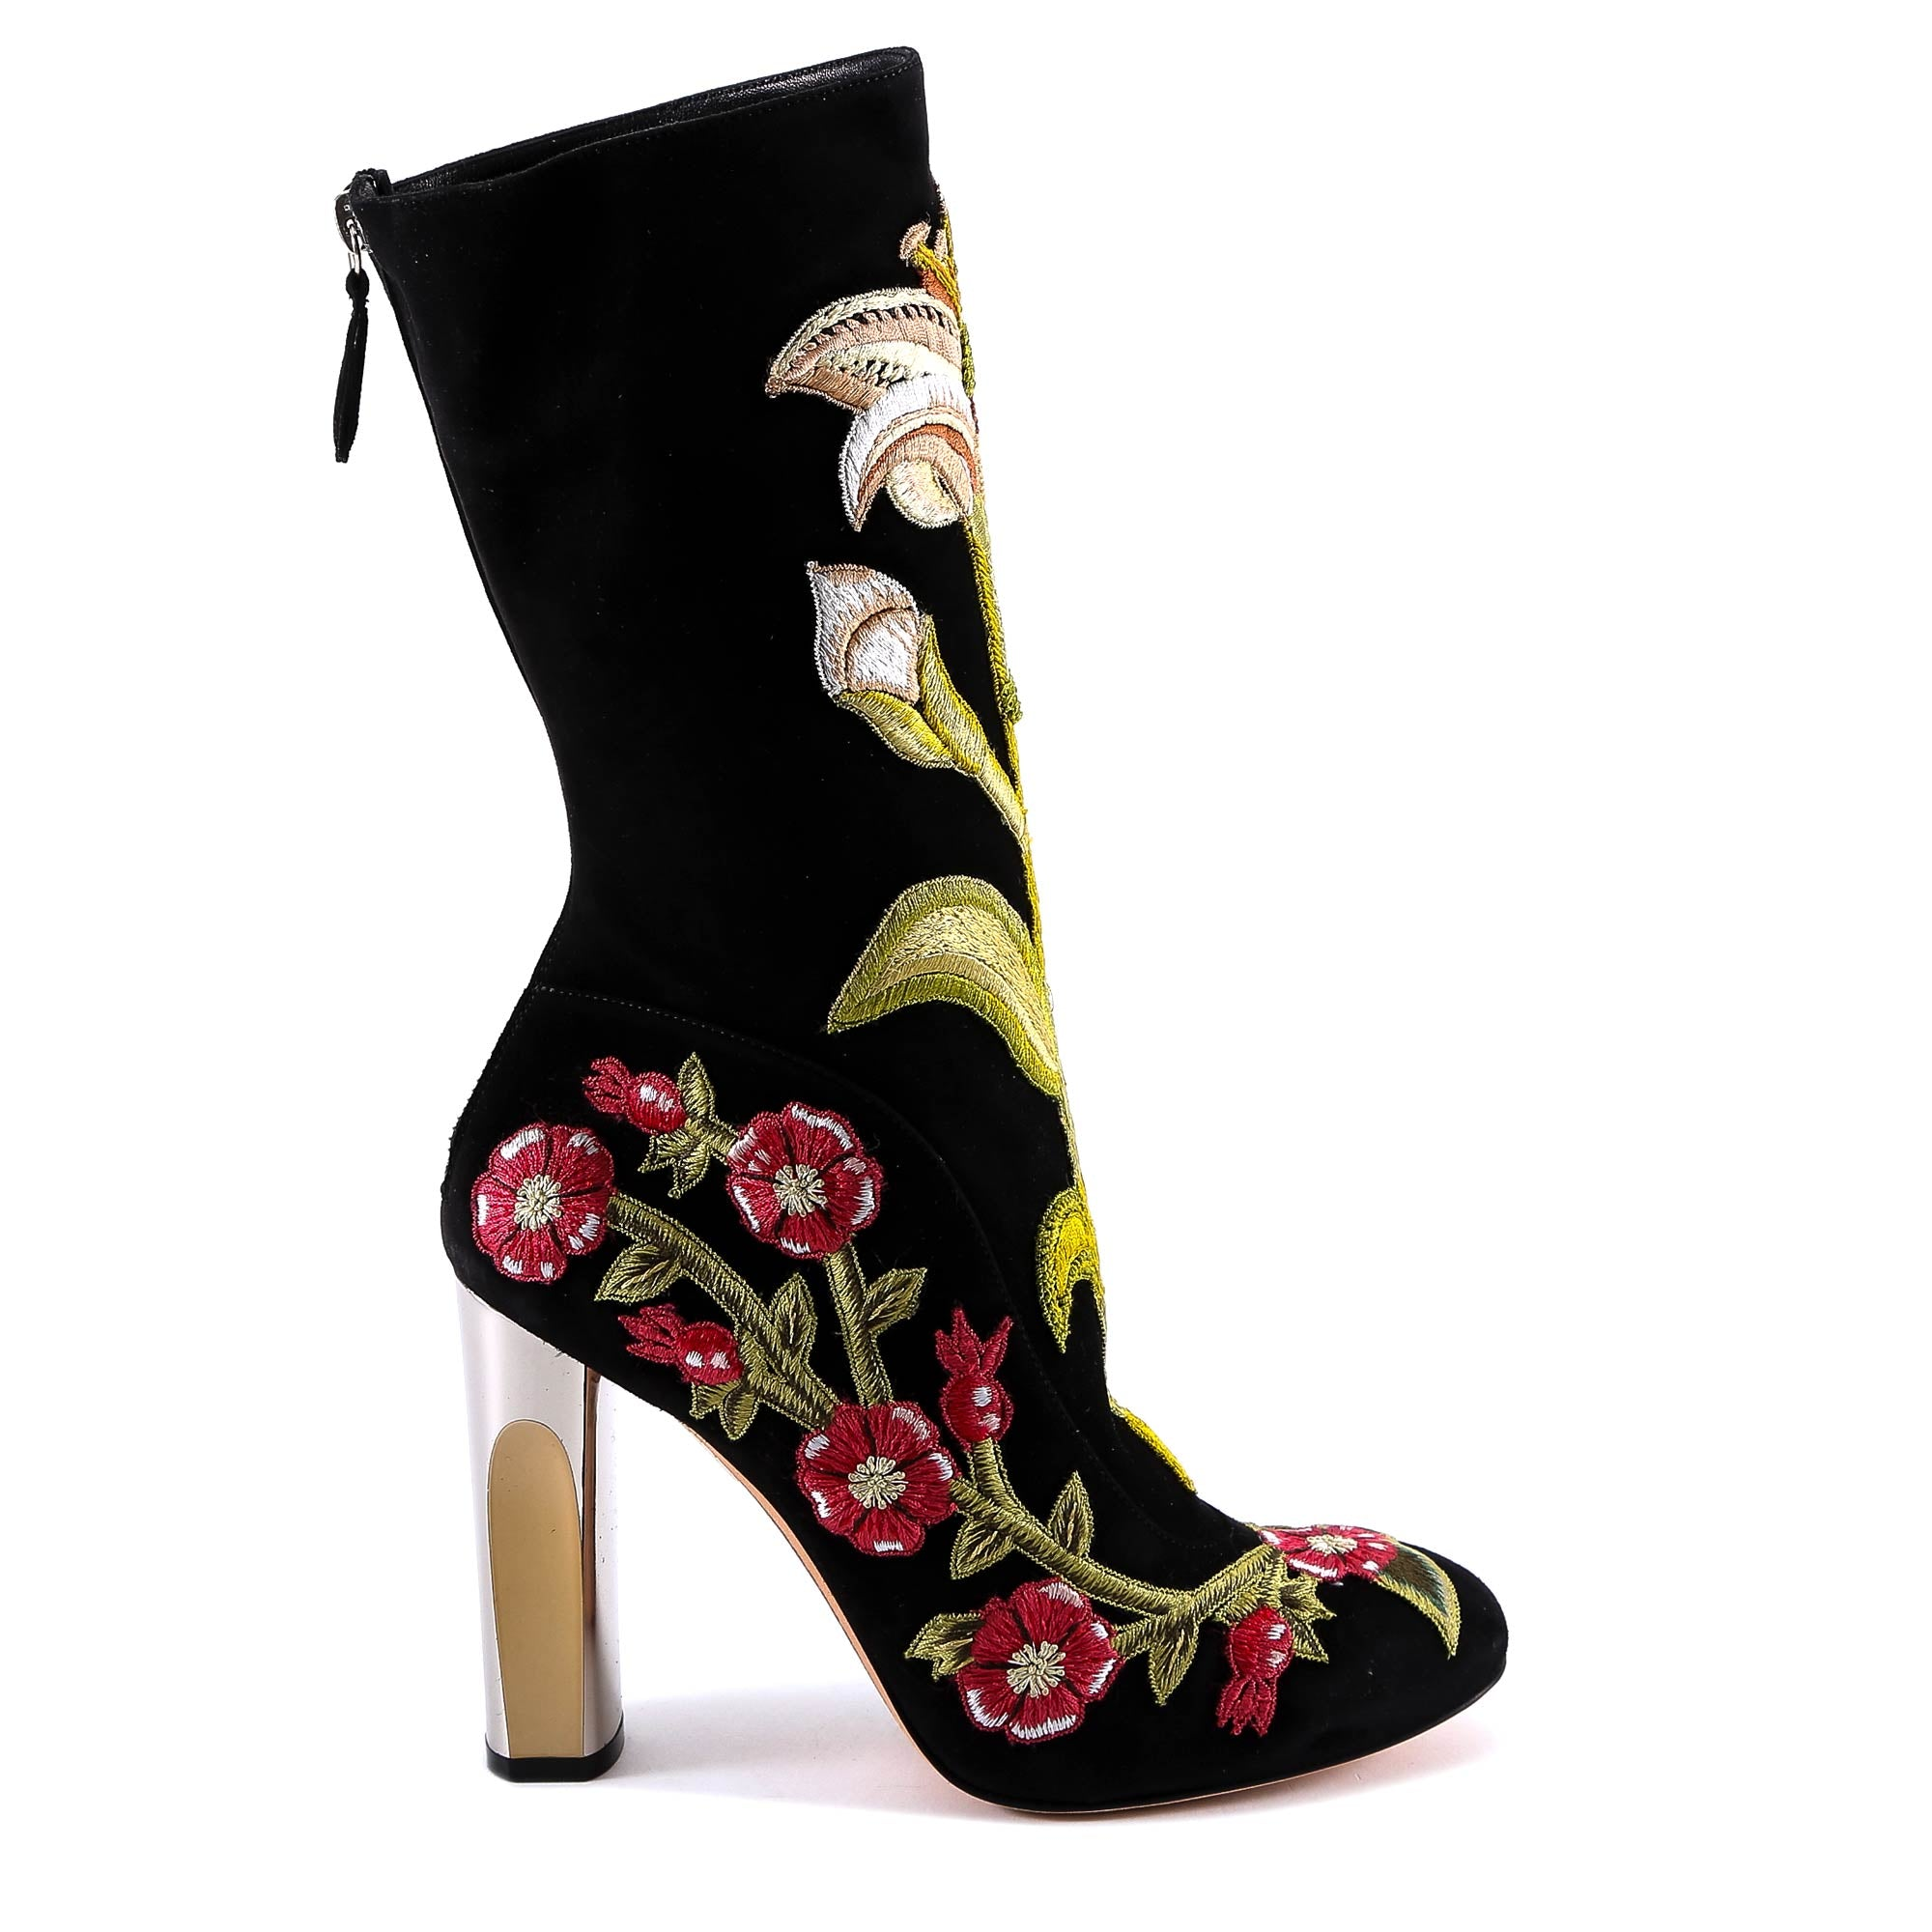 ALEXANDER MCQUEEN MEDIEVAL EMBROIDERED BOOTS